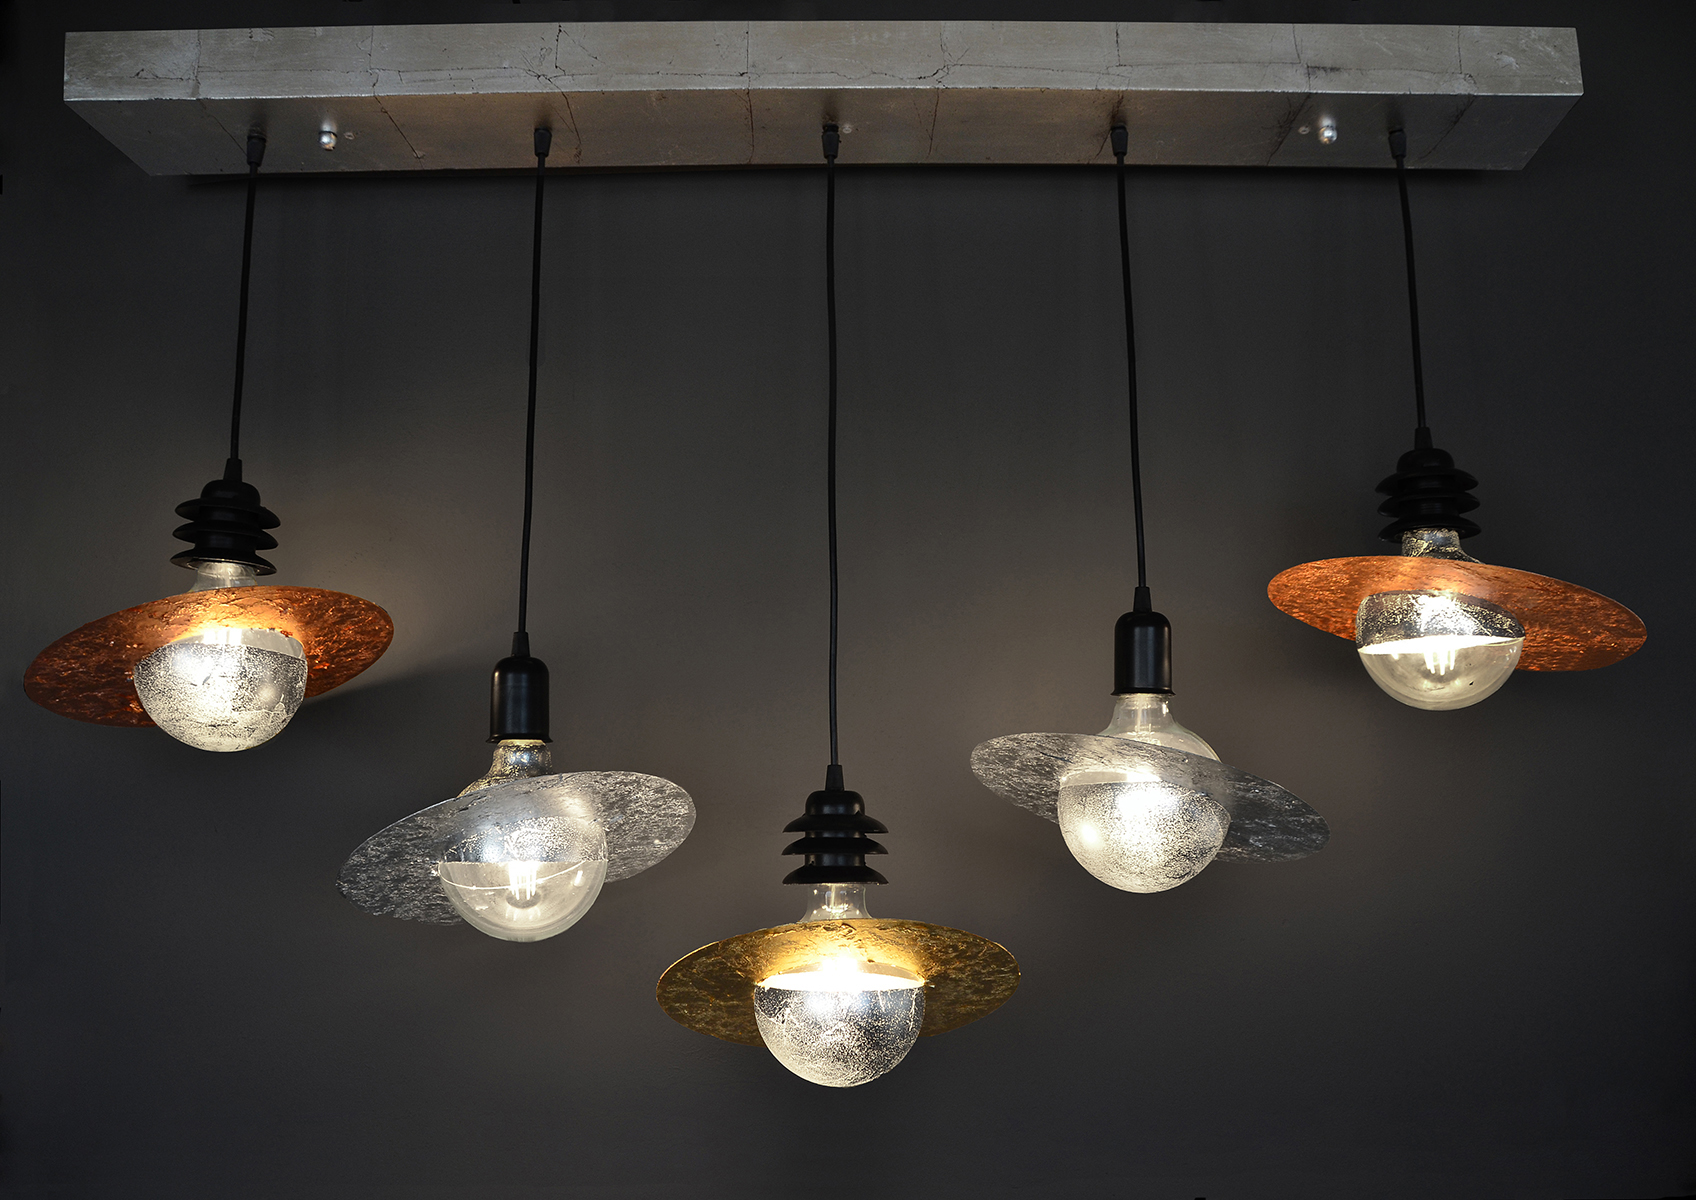 Galaxy 5 Bar - Ceiling Light fixture